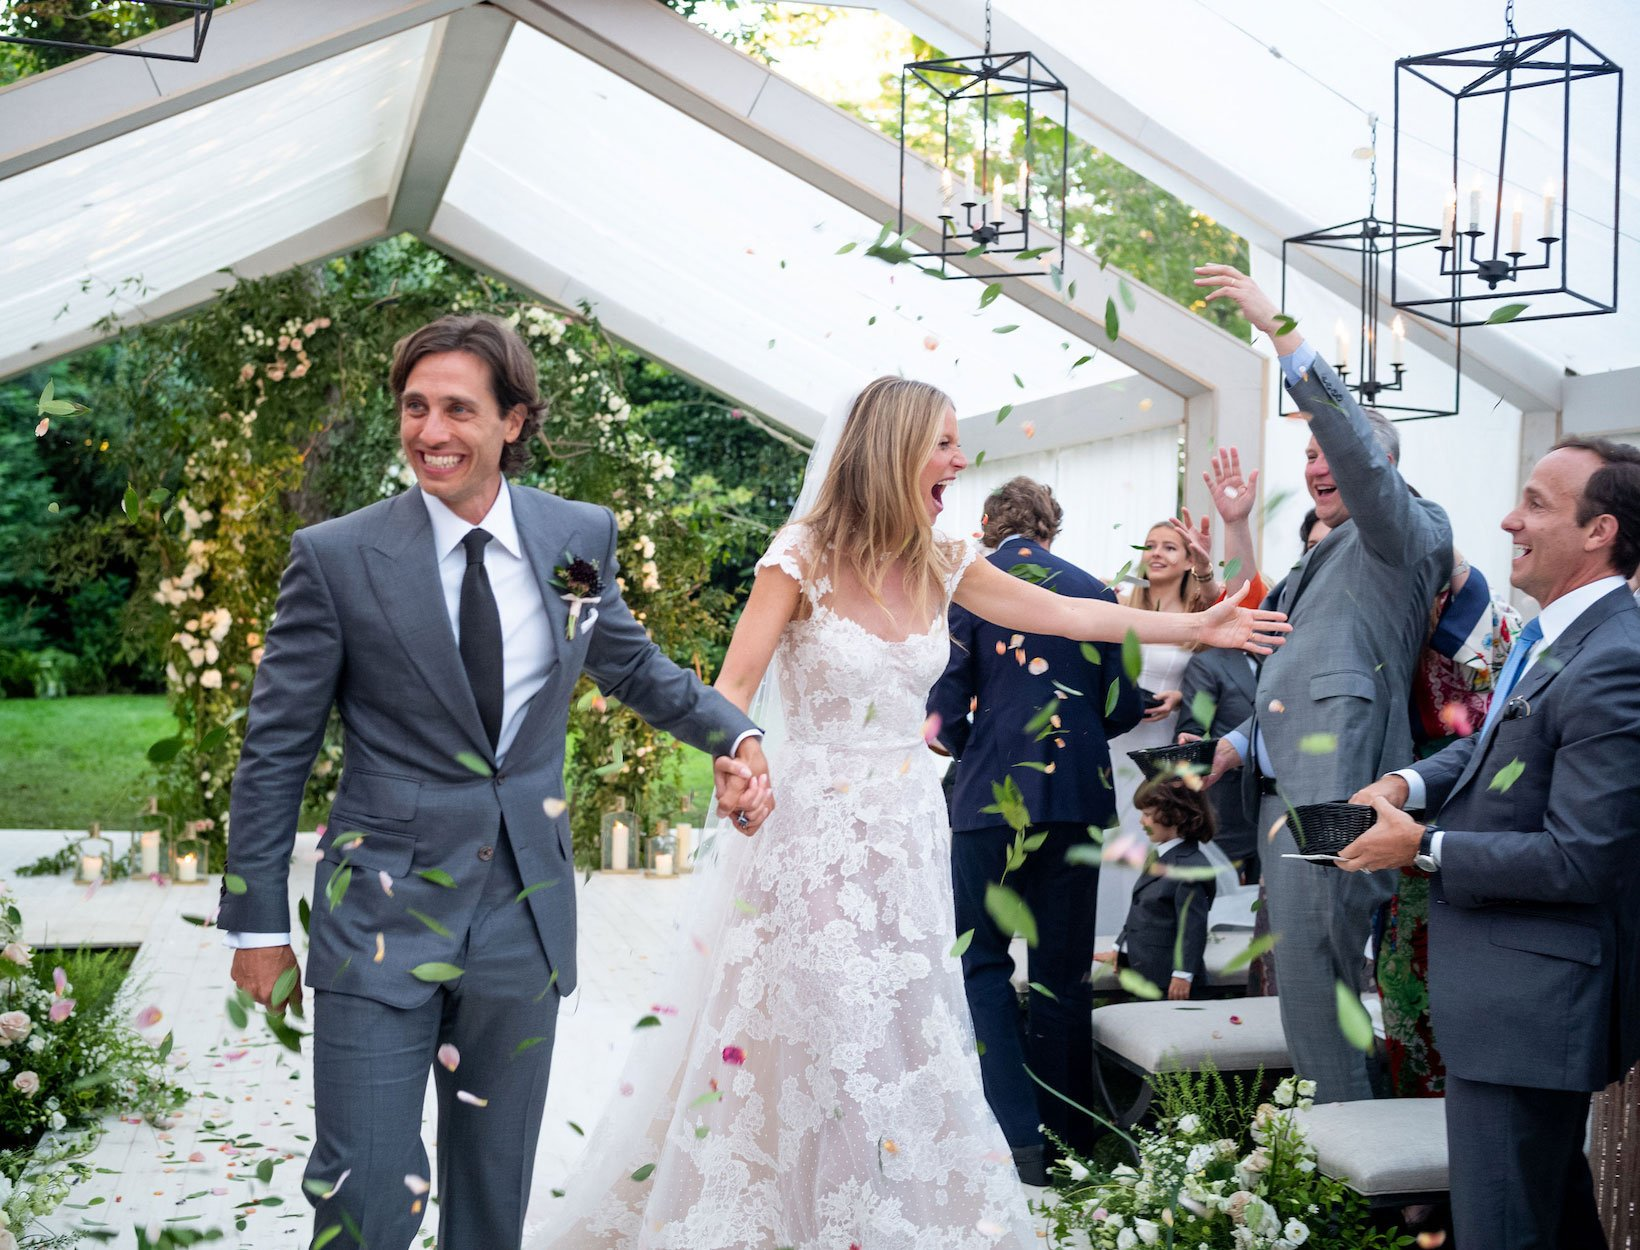 Brad Falchuk on his wedding day with his wife